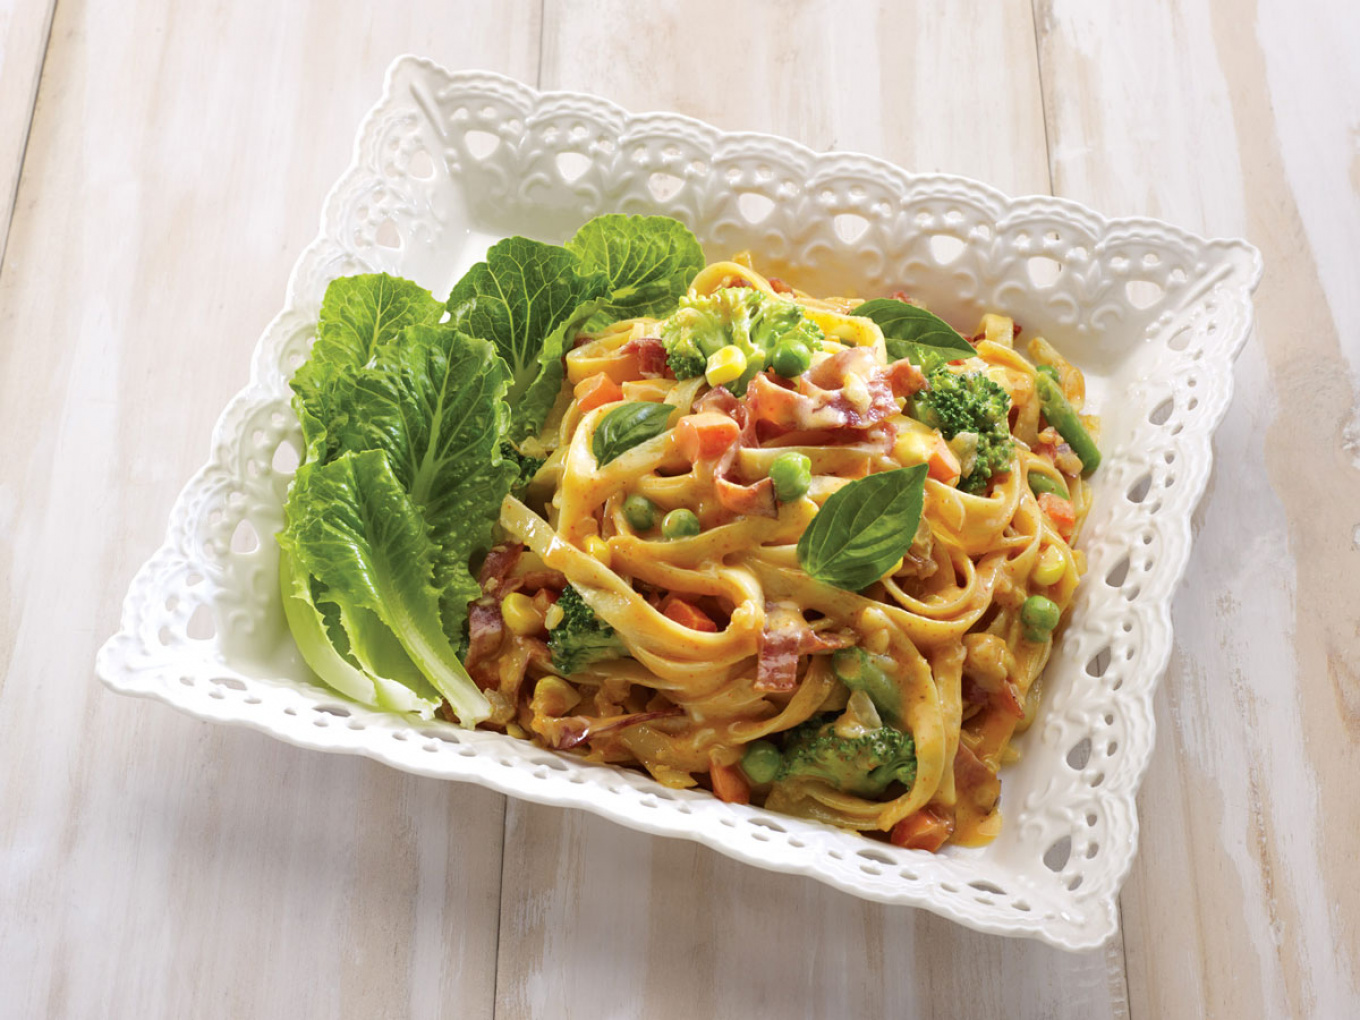 Vegetable Pasta with Spicy Tomato Sauce